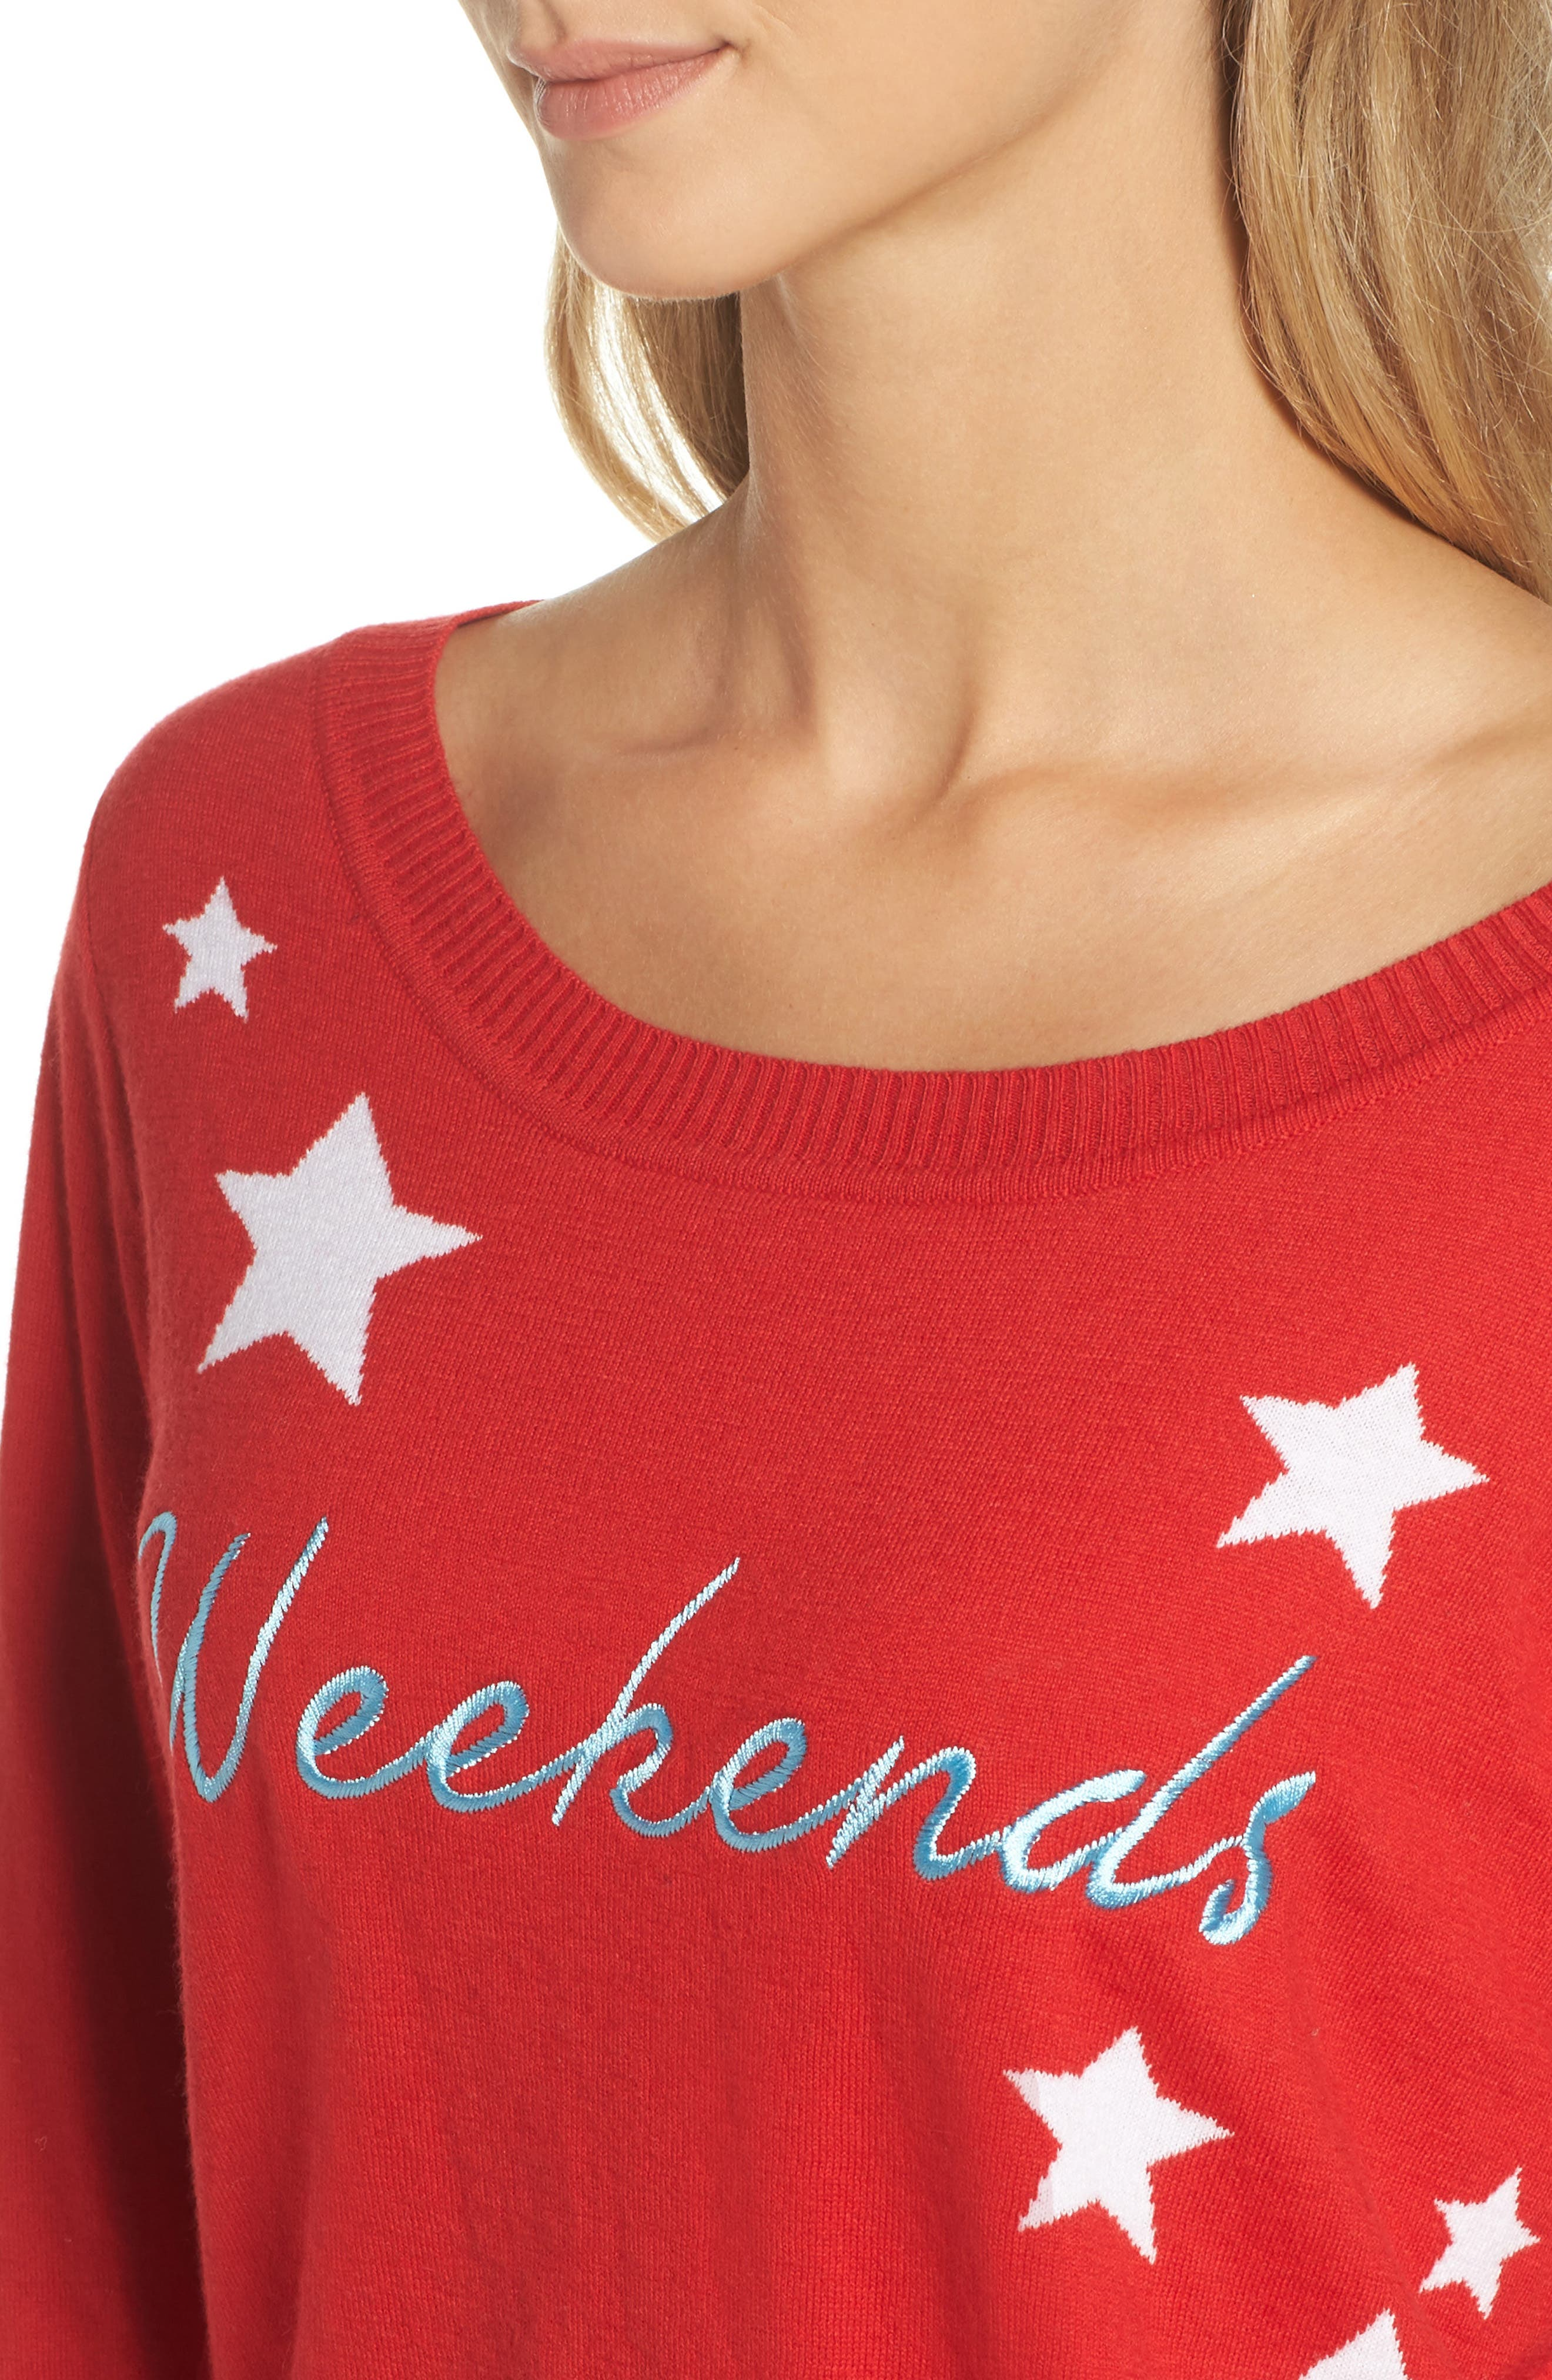 Weekends Intarsia Sweater,                             Alternate thumbnail 4, color,